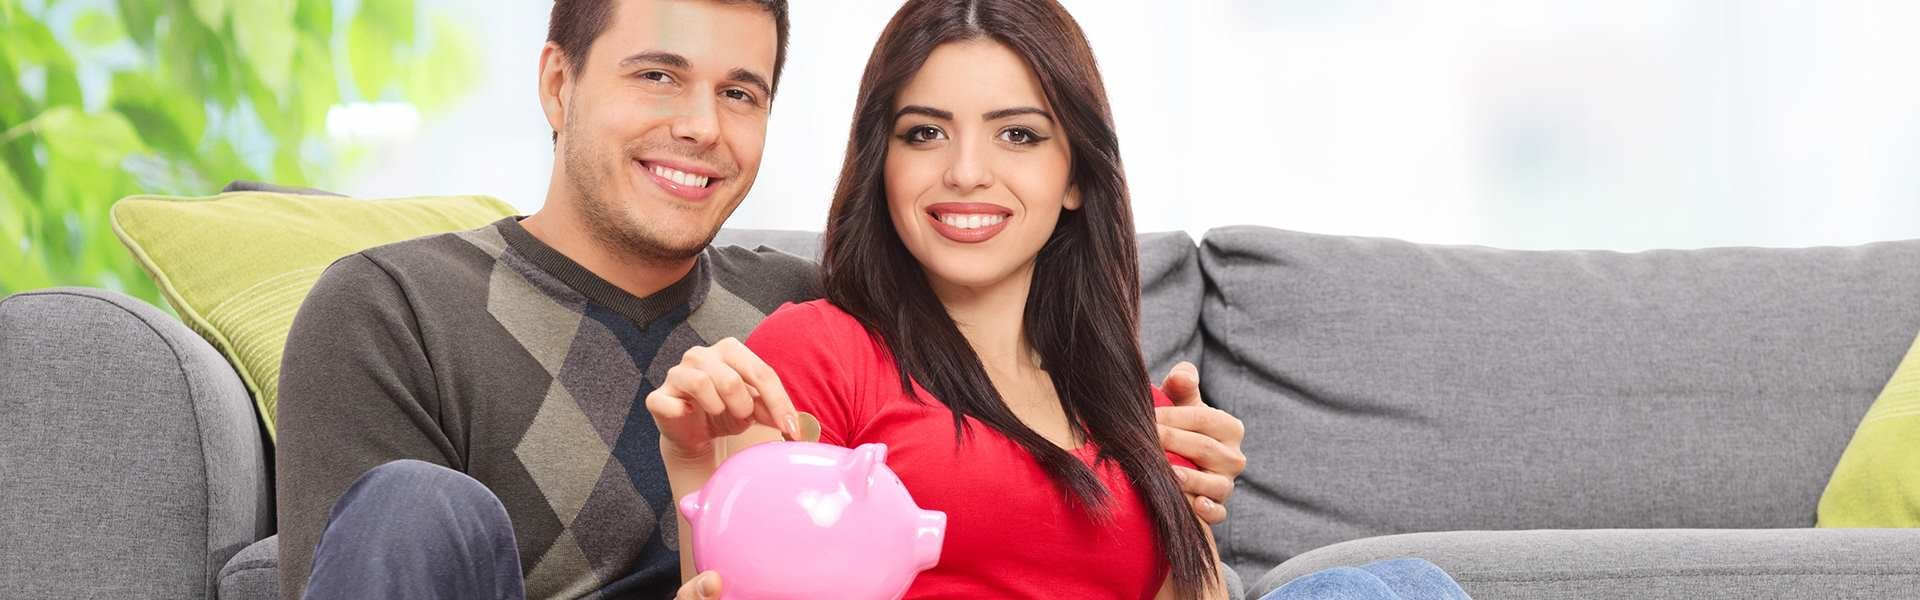 FINANCE - Couple Smiling